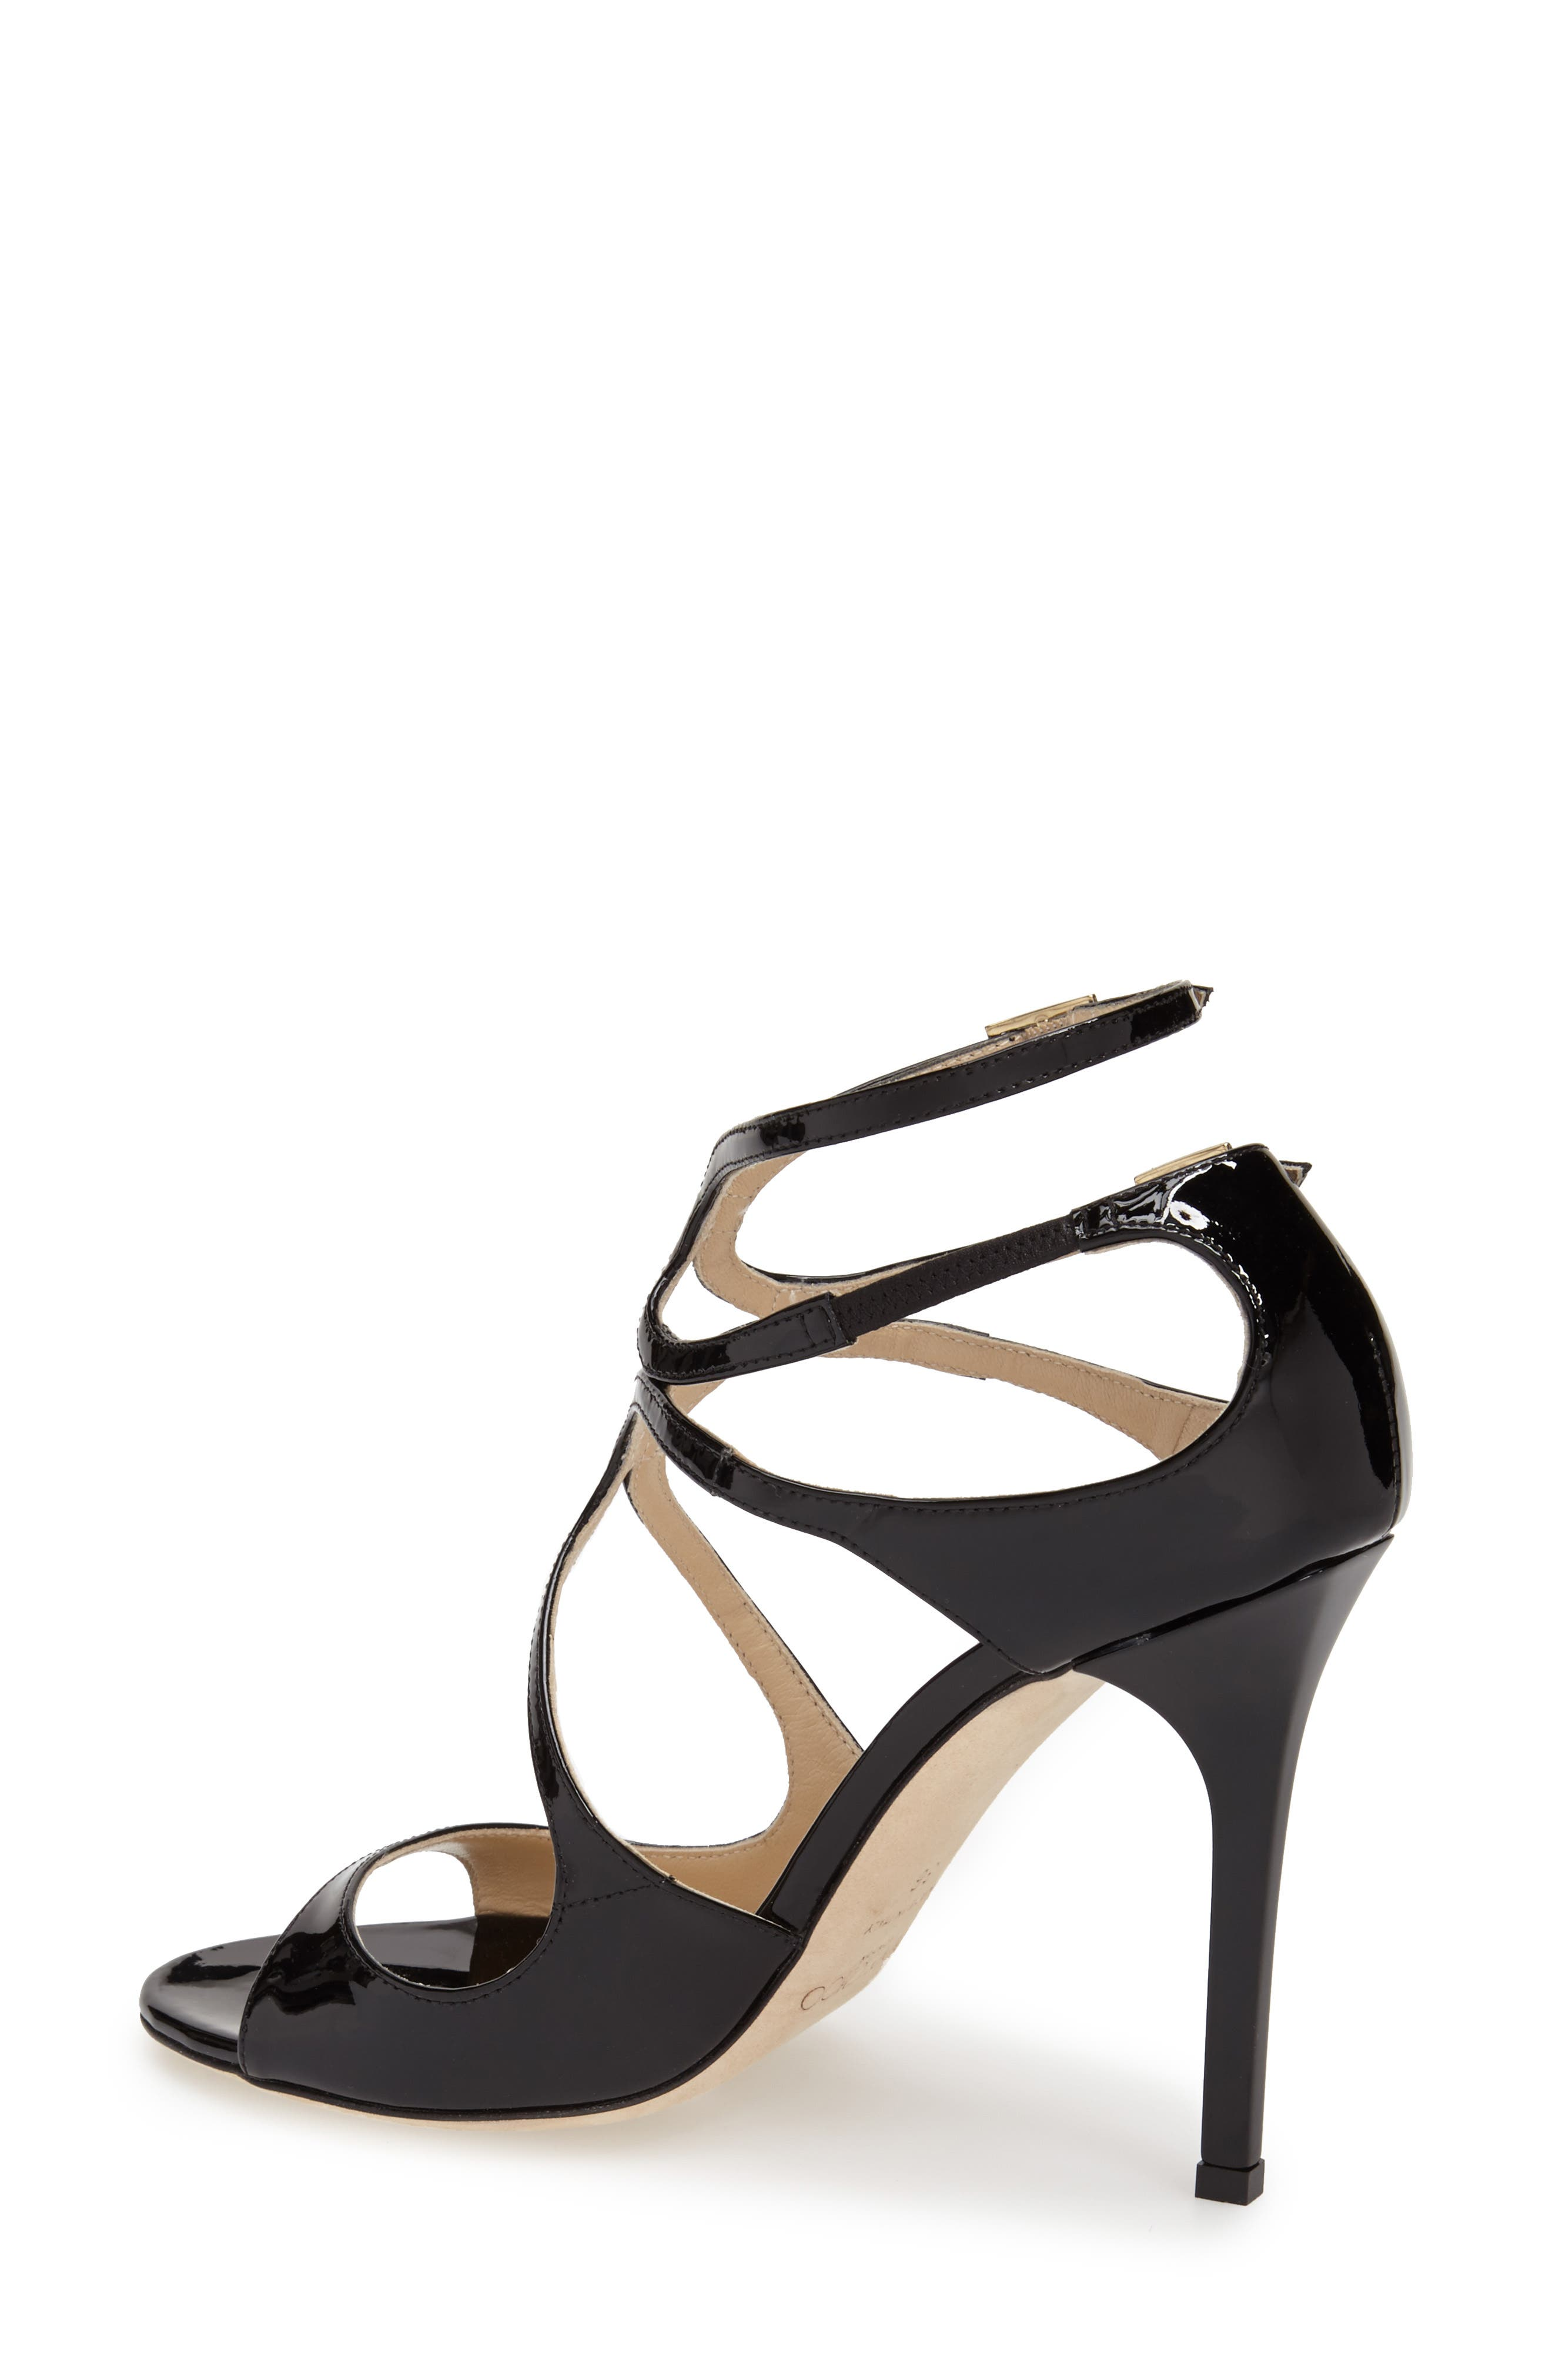 JIMMY CHOO, 'Lang' Sandal, Main thumbnail 1, color, BLACK PATENT